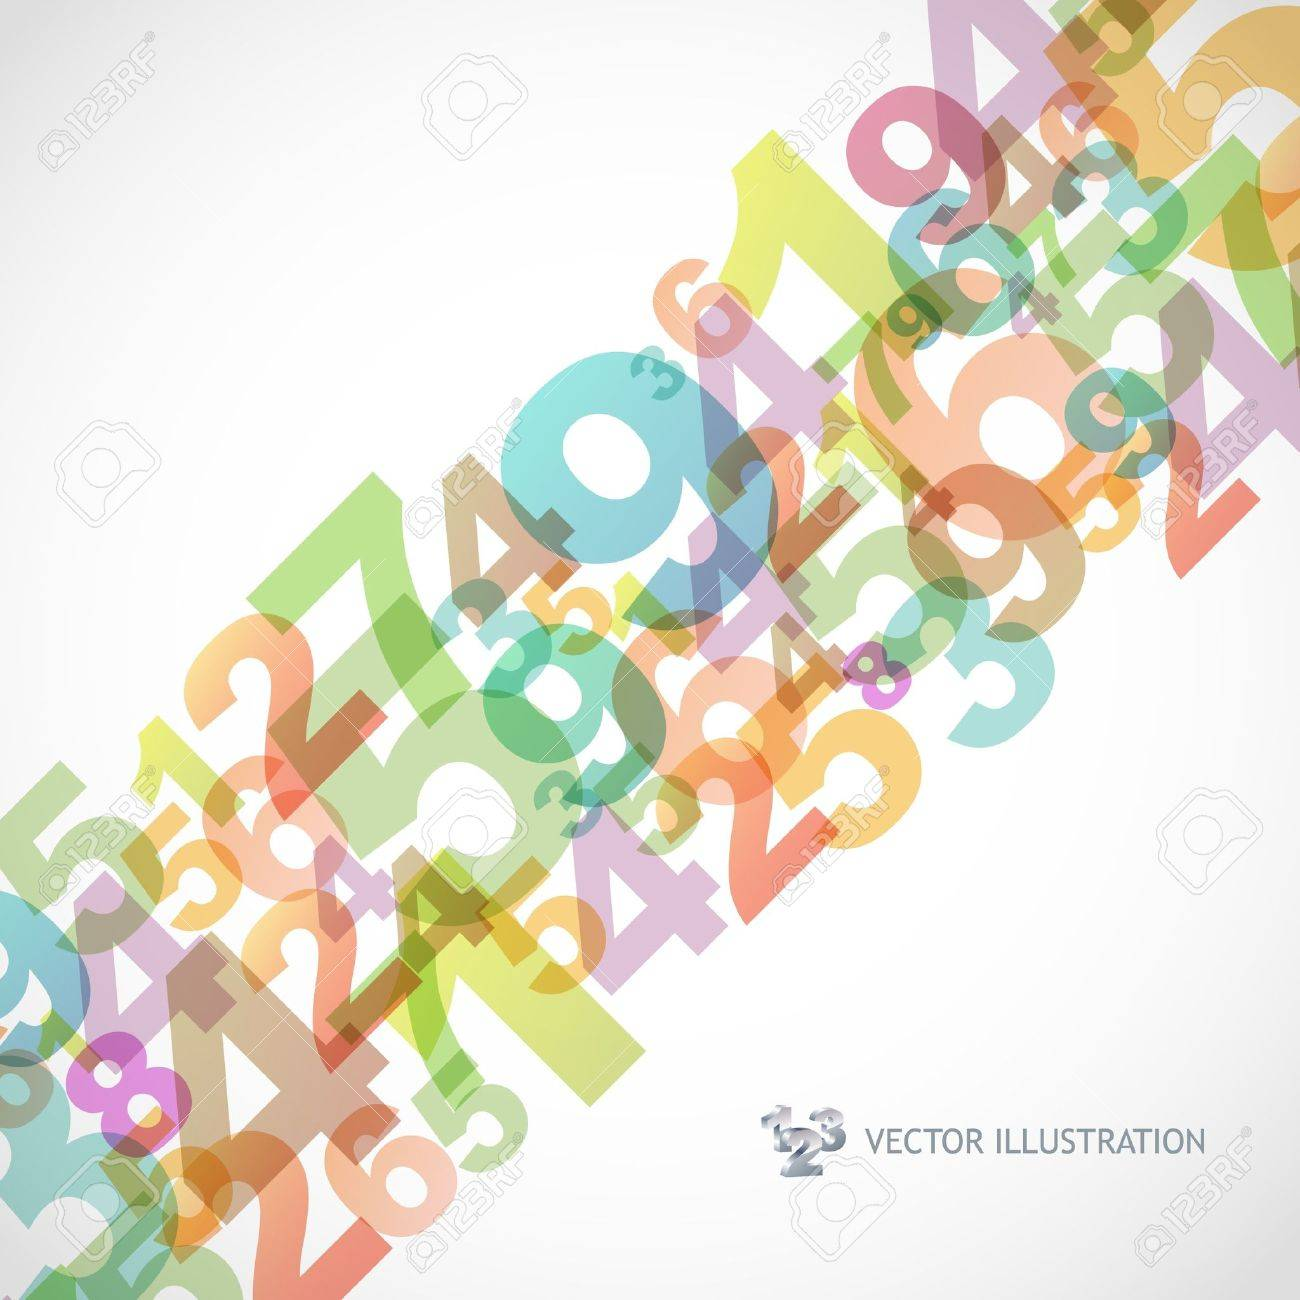 Abstract background with numbers. Stock Vector - 9839730